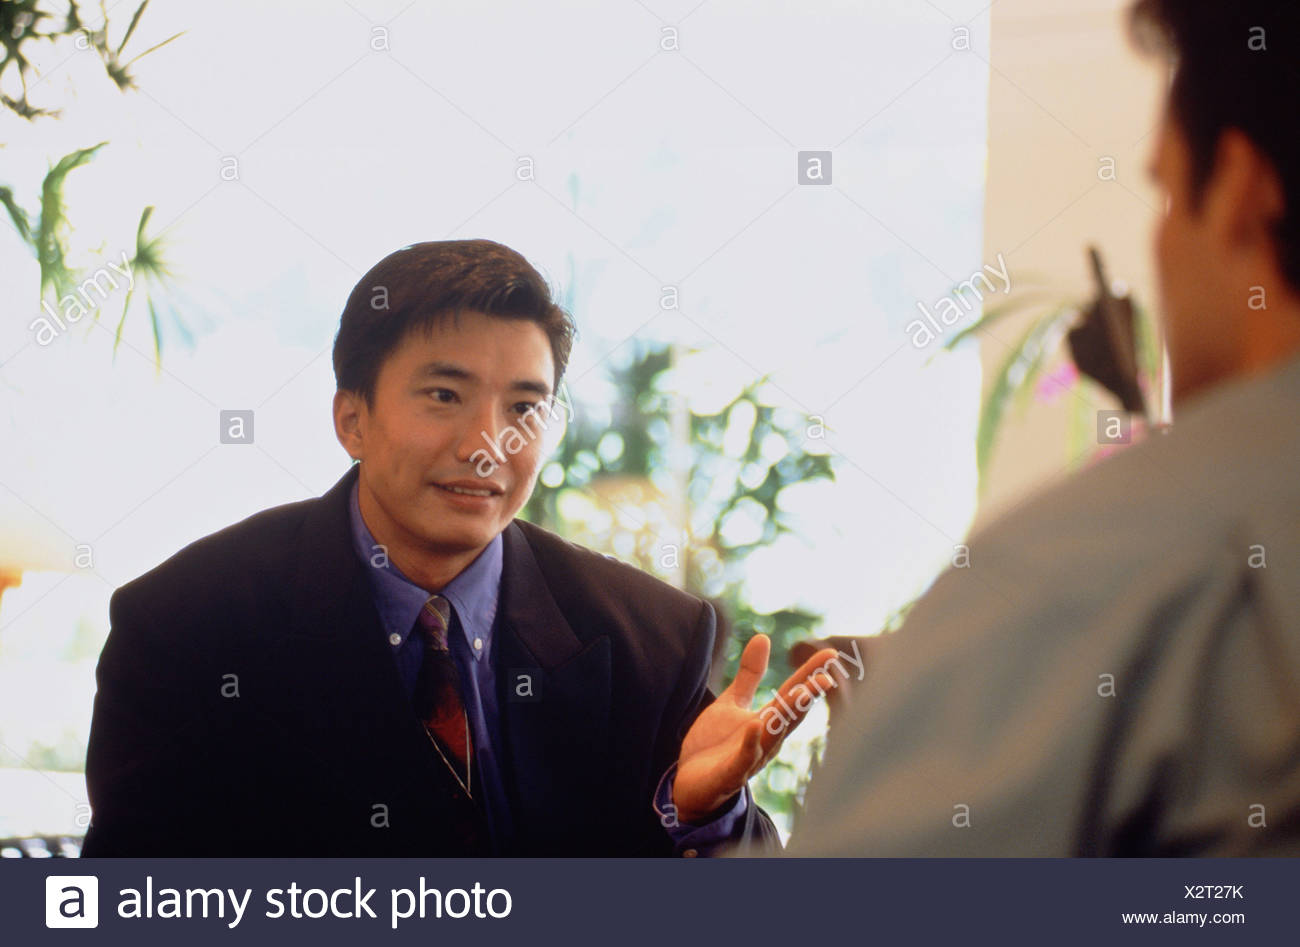 Close-up of Chinese business executive man talking with a European man on restaurant  terrace. Stock Photo